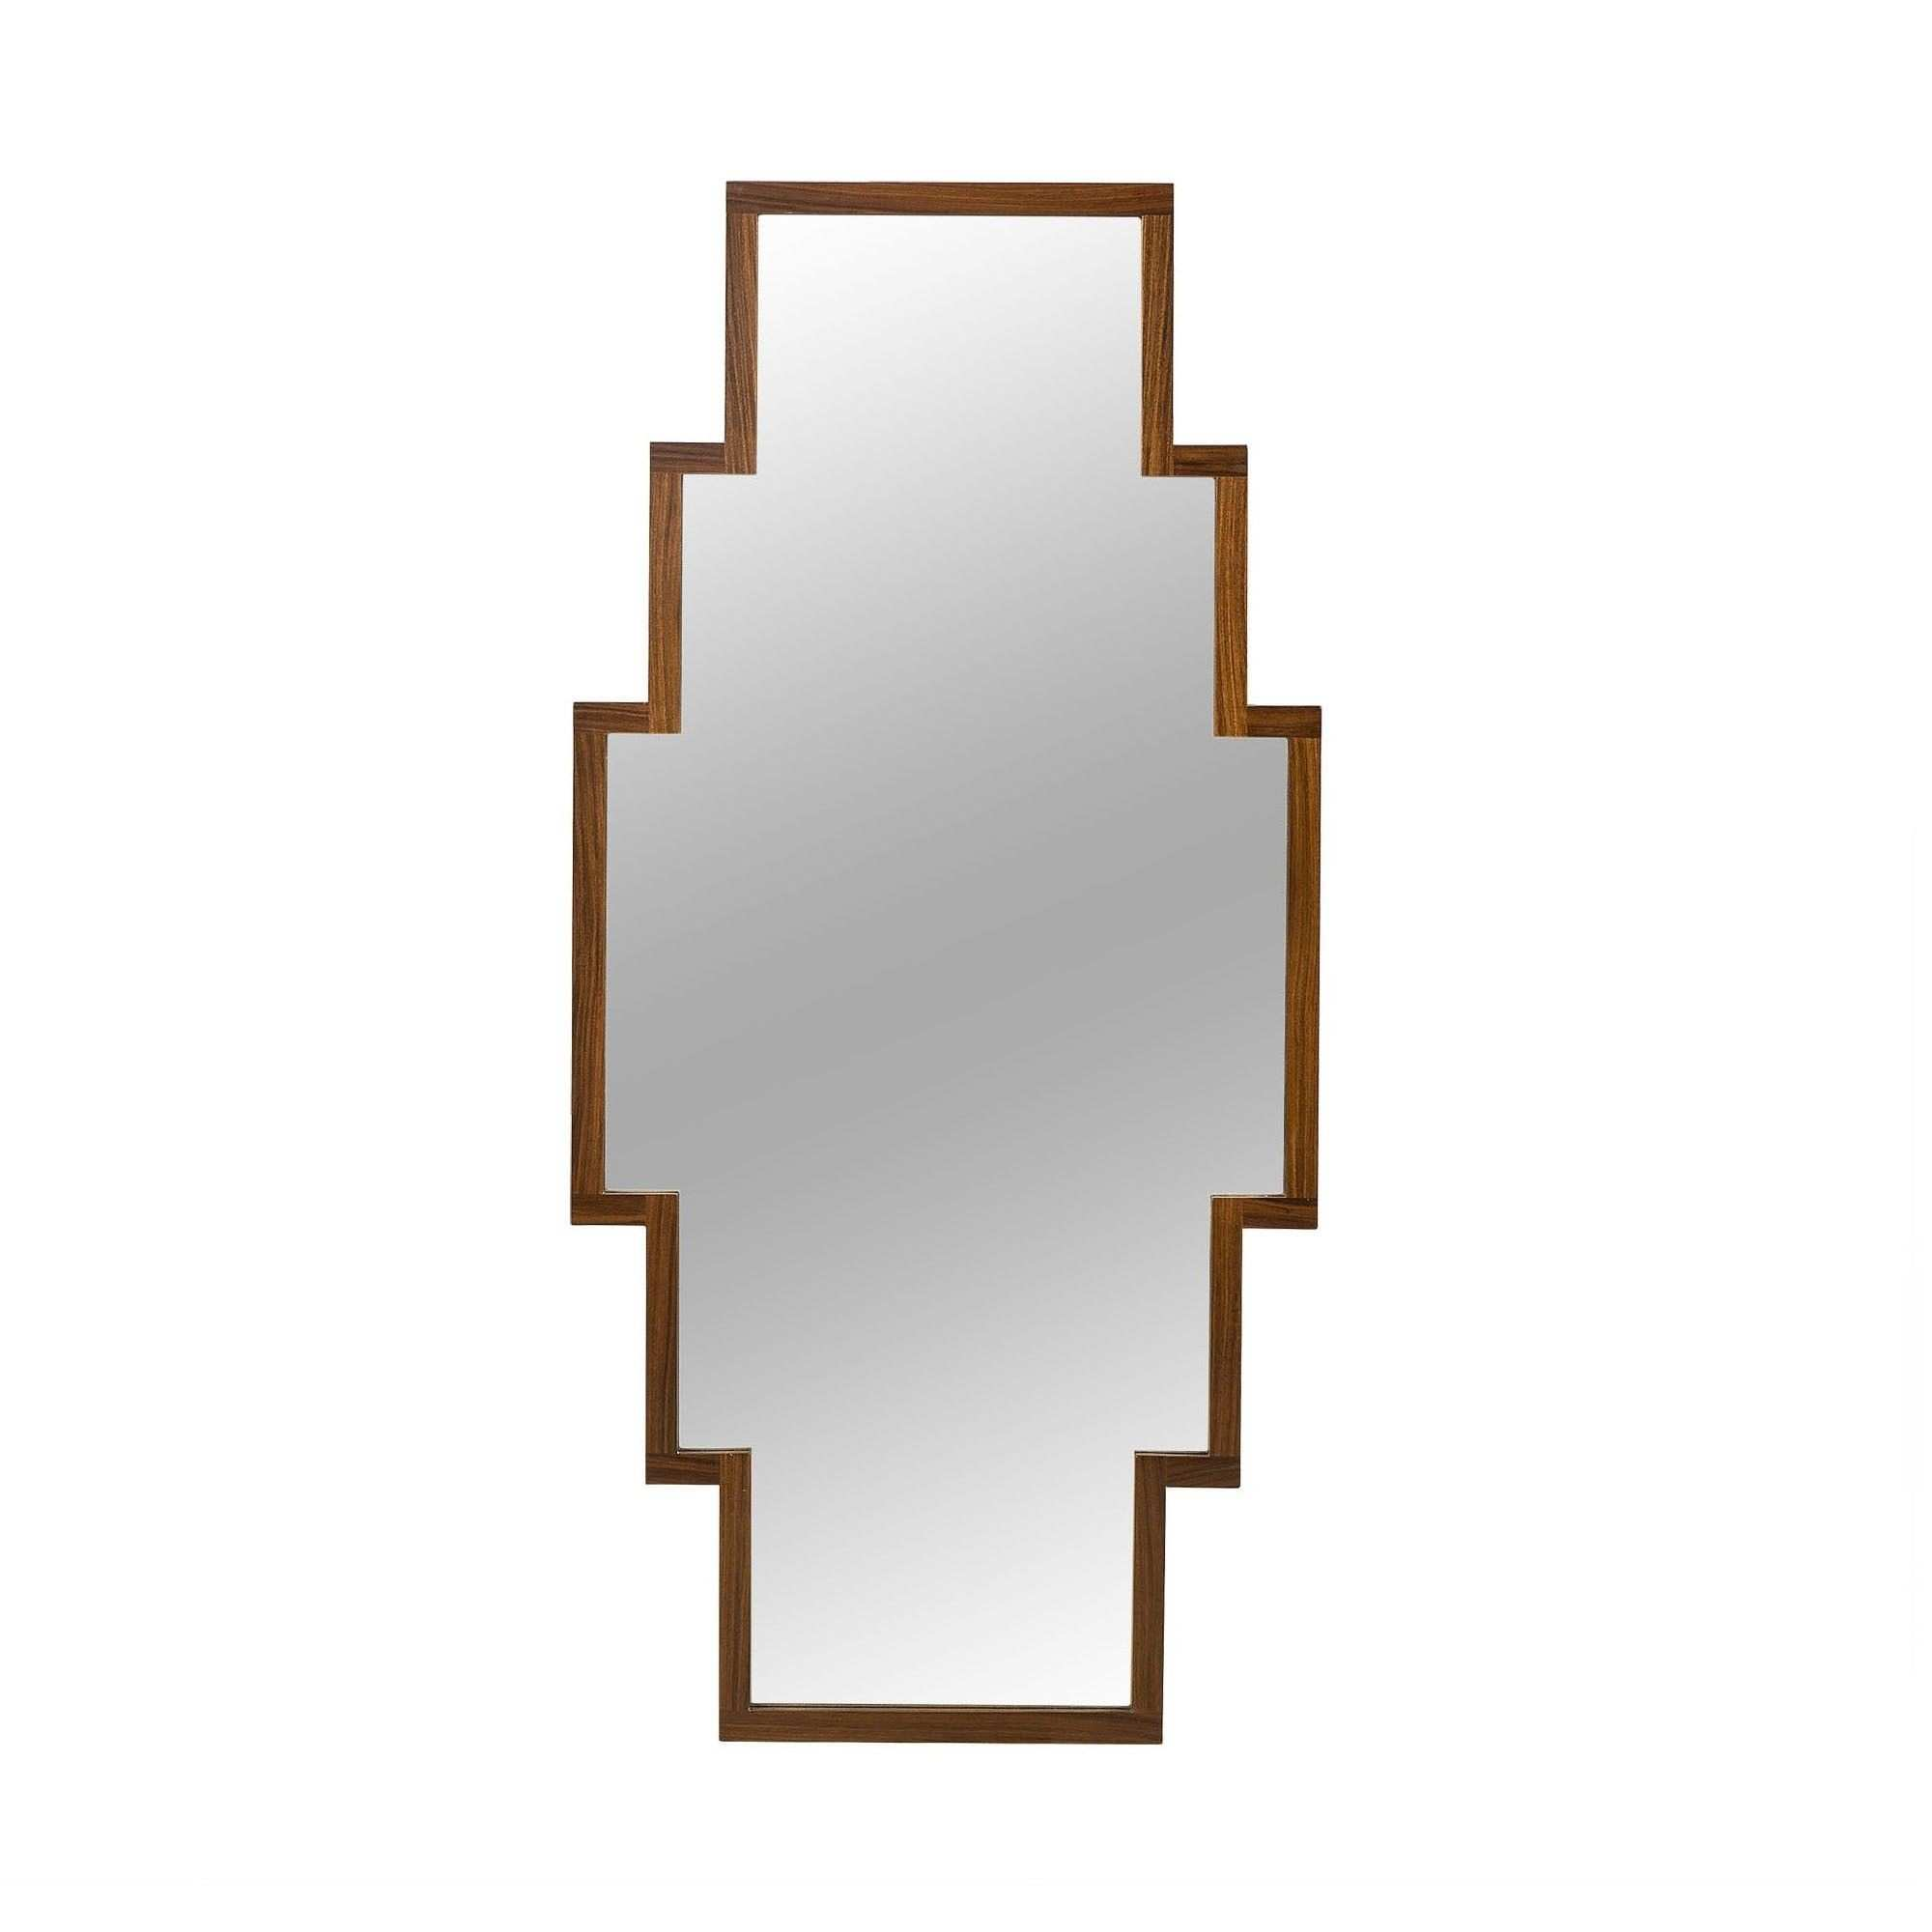 A large wood framed mirror with a symmetrical step shape to the